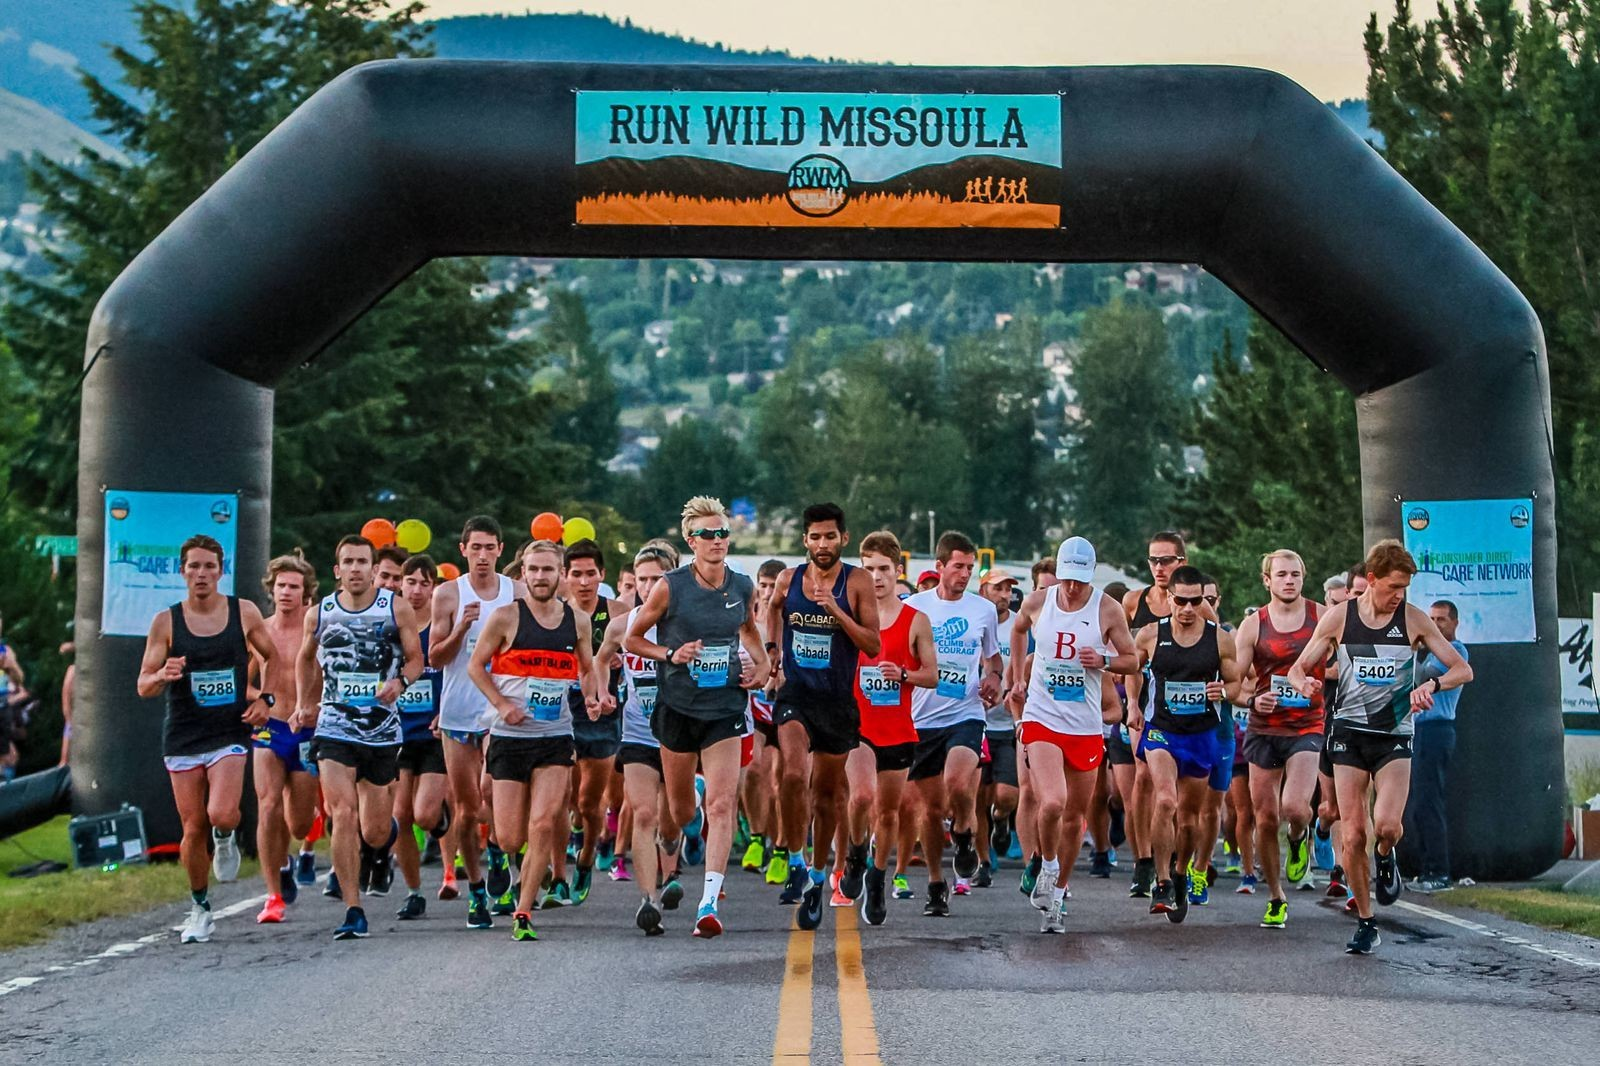 Registration for the 2020 Missoula Marathon weekend opened on Tuesday